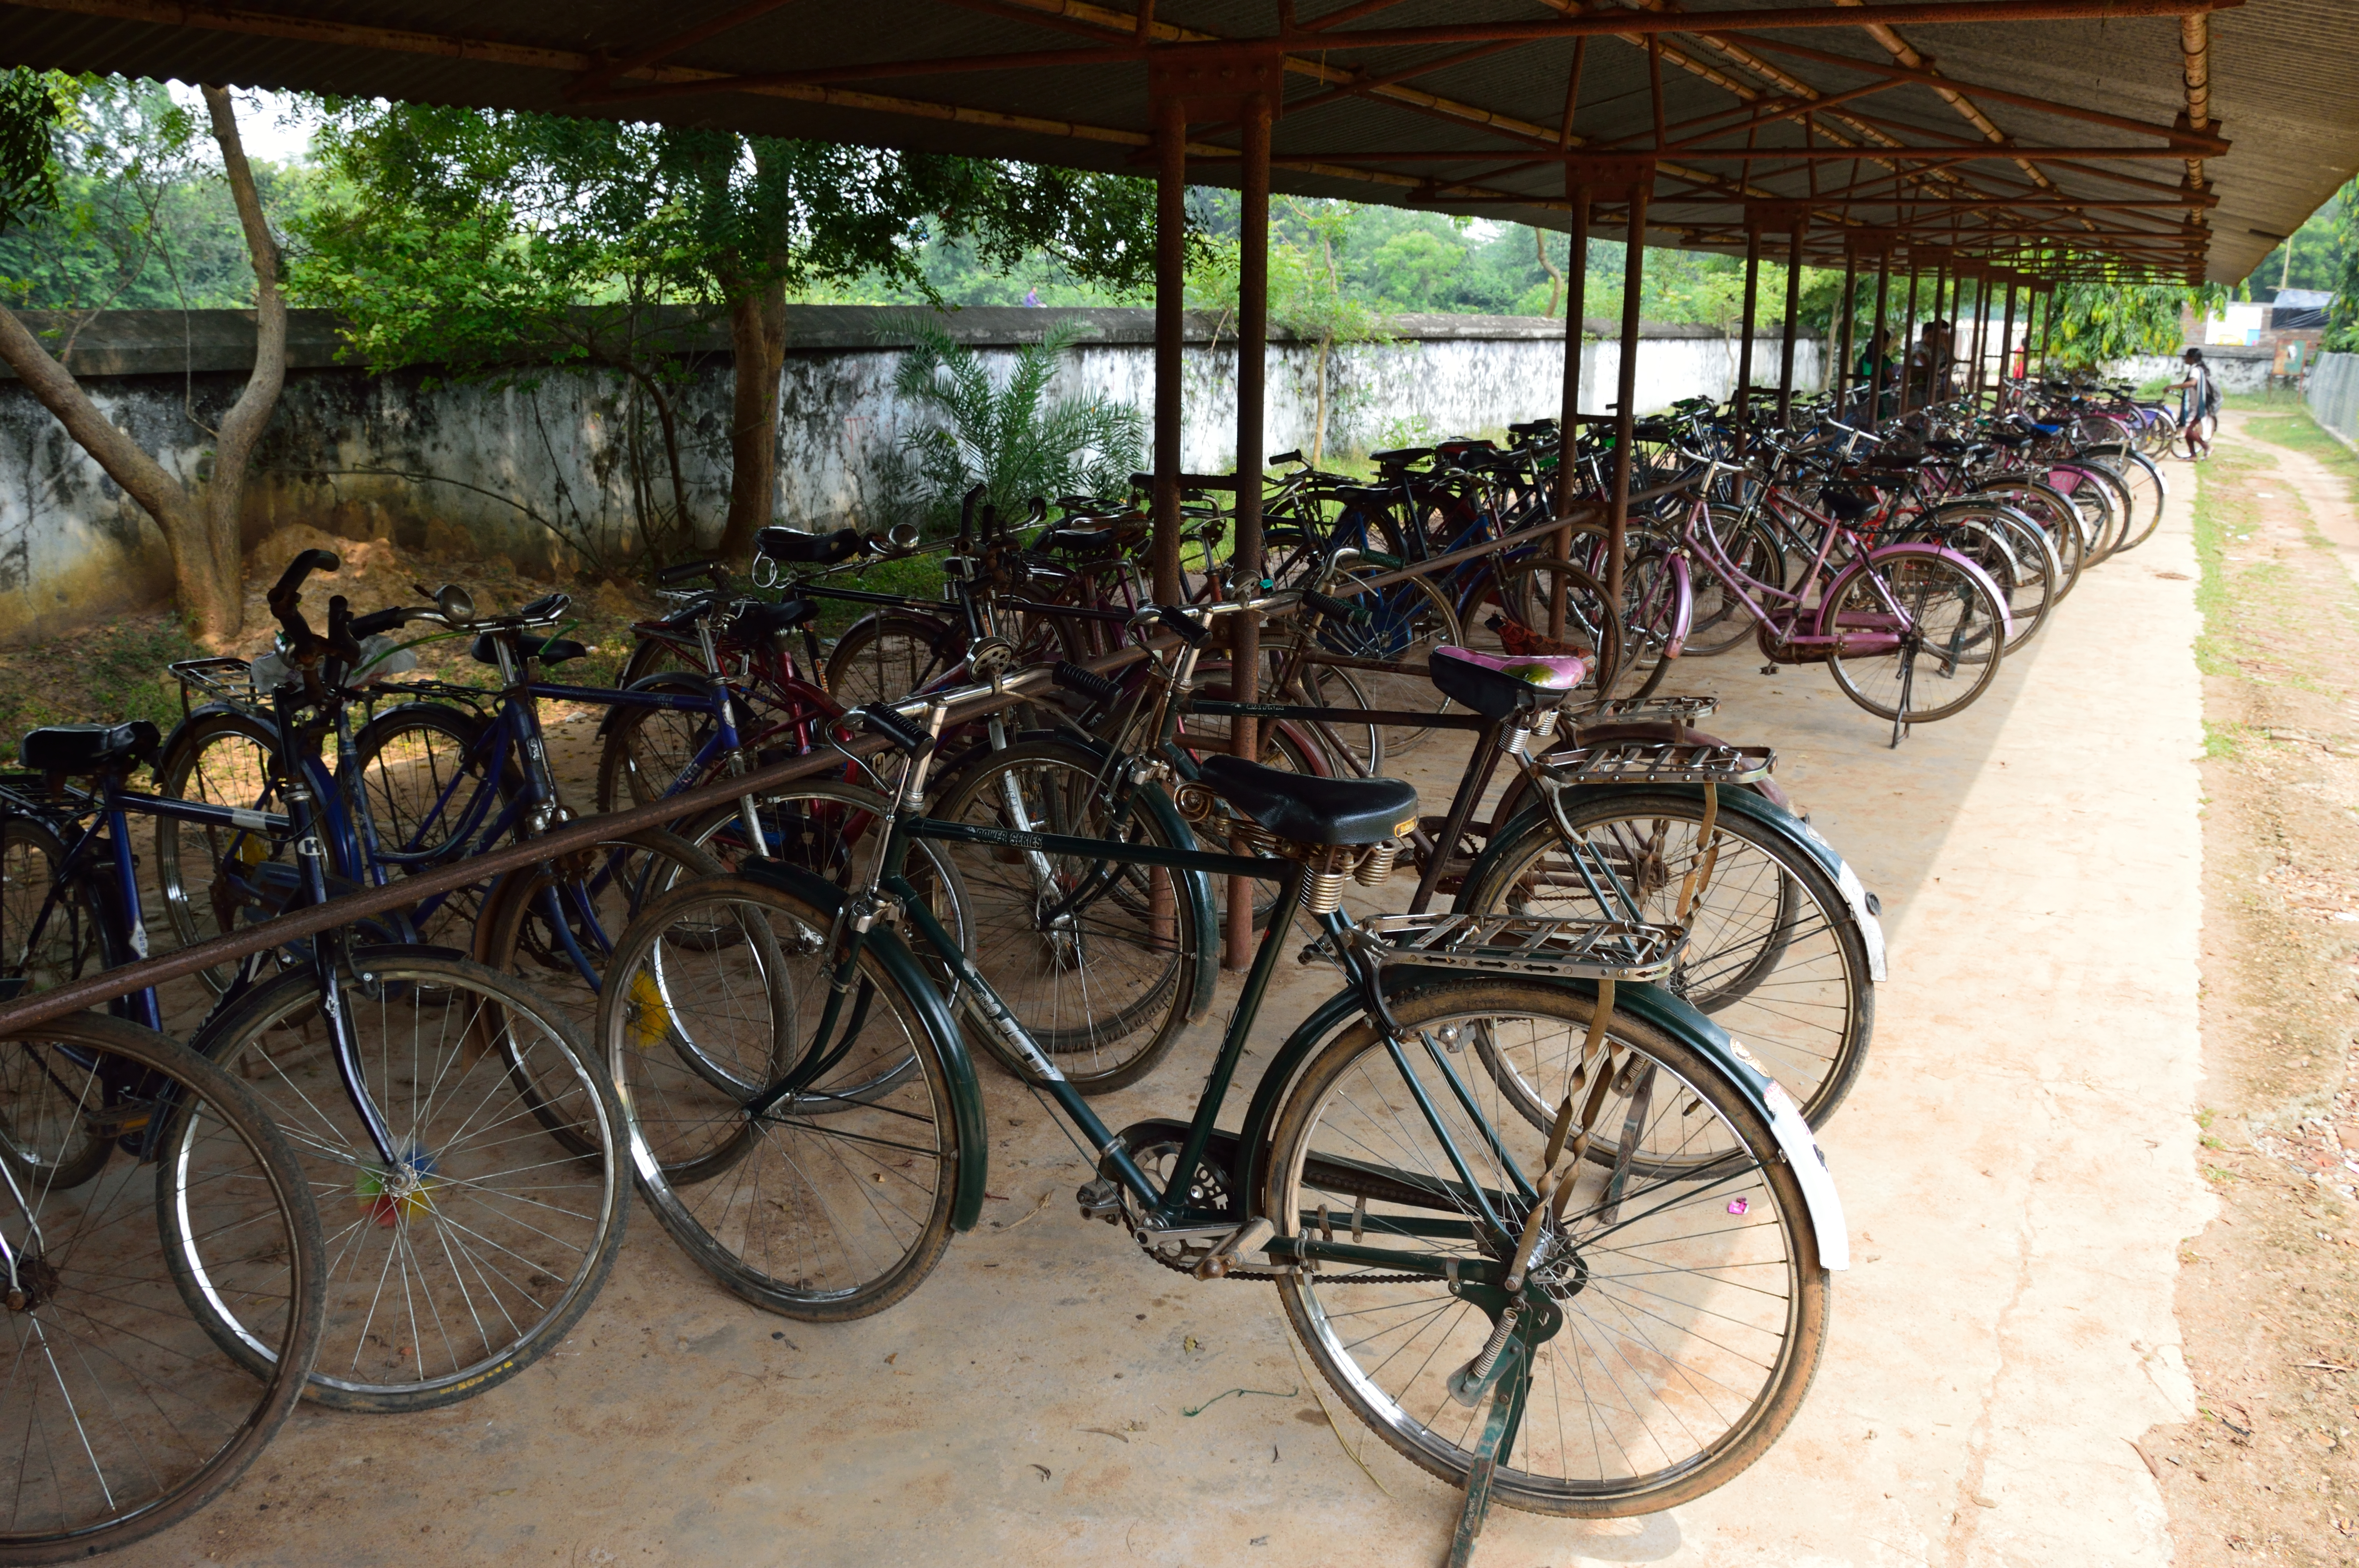 File:Cycle Stand - Hijli College - West Midnapore 2015-09-28 4135 ...